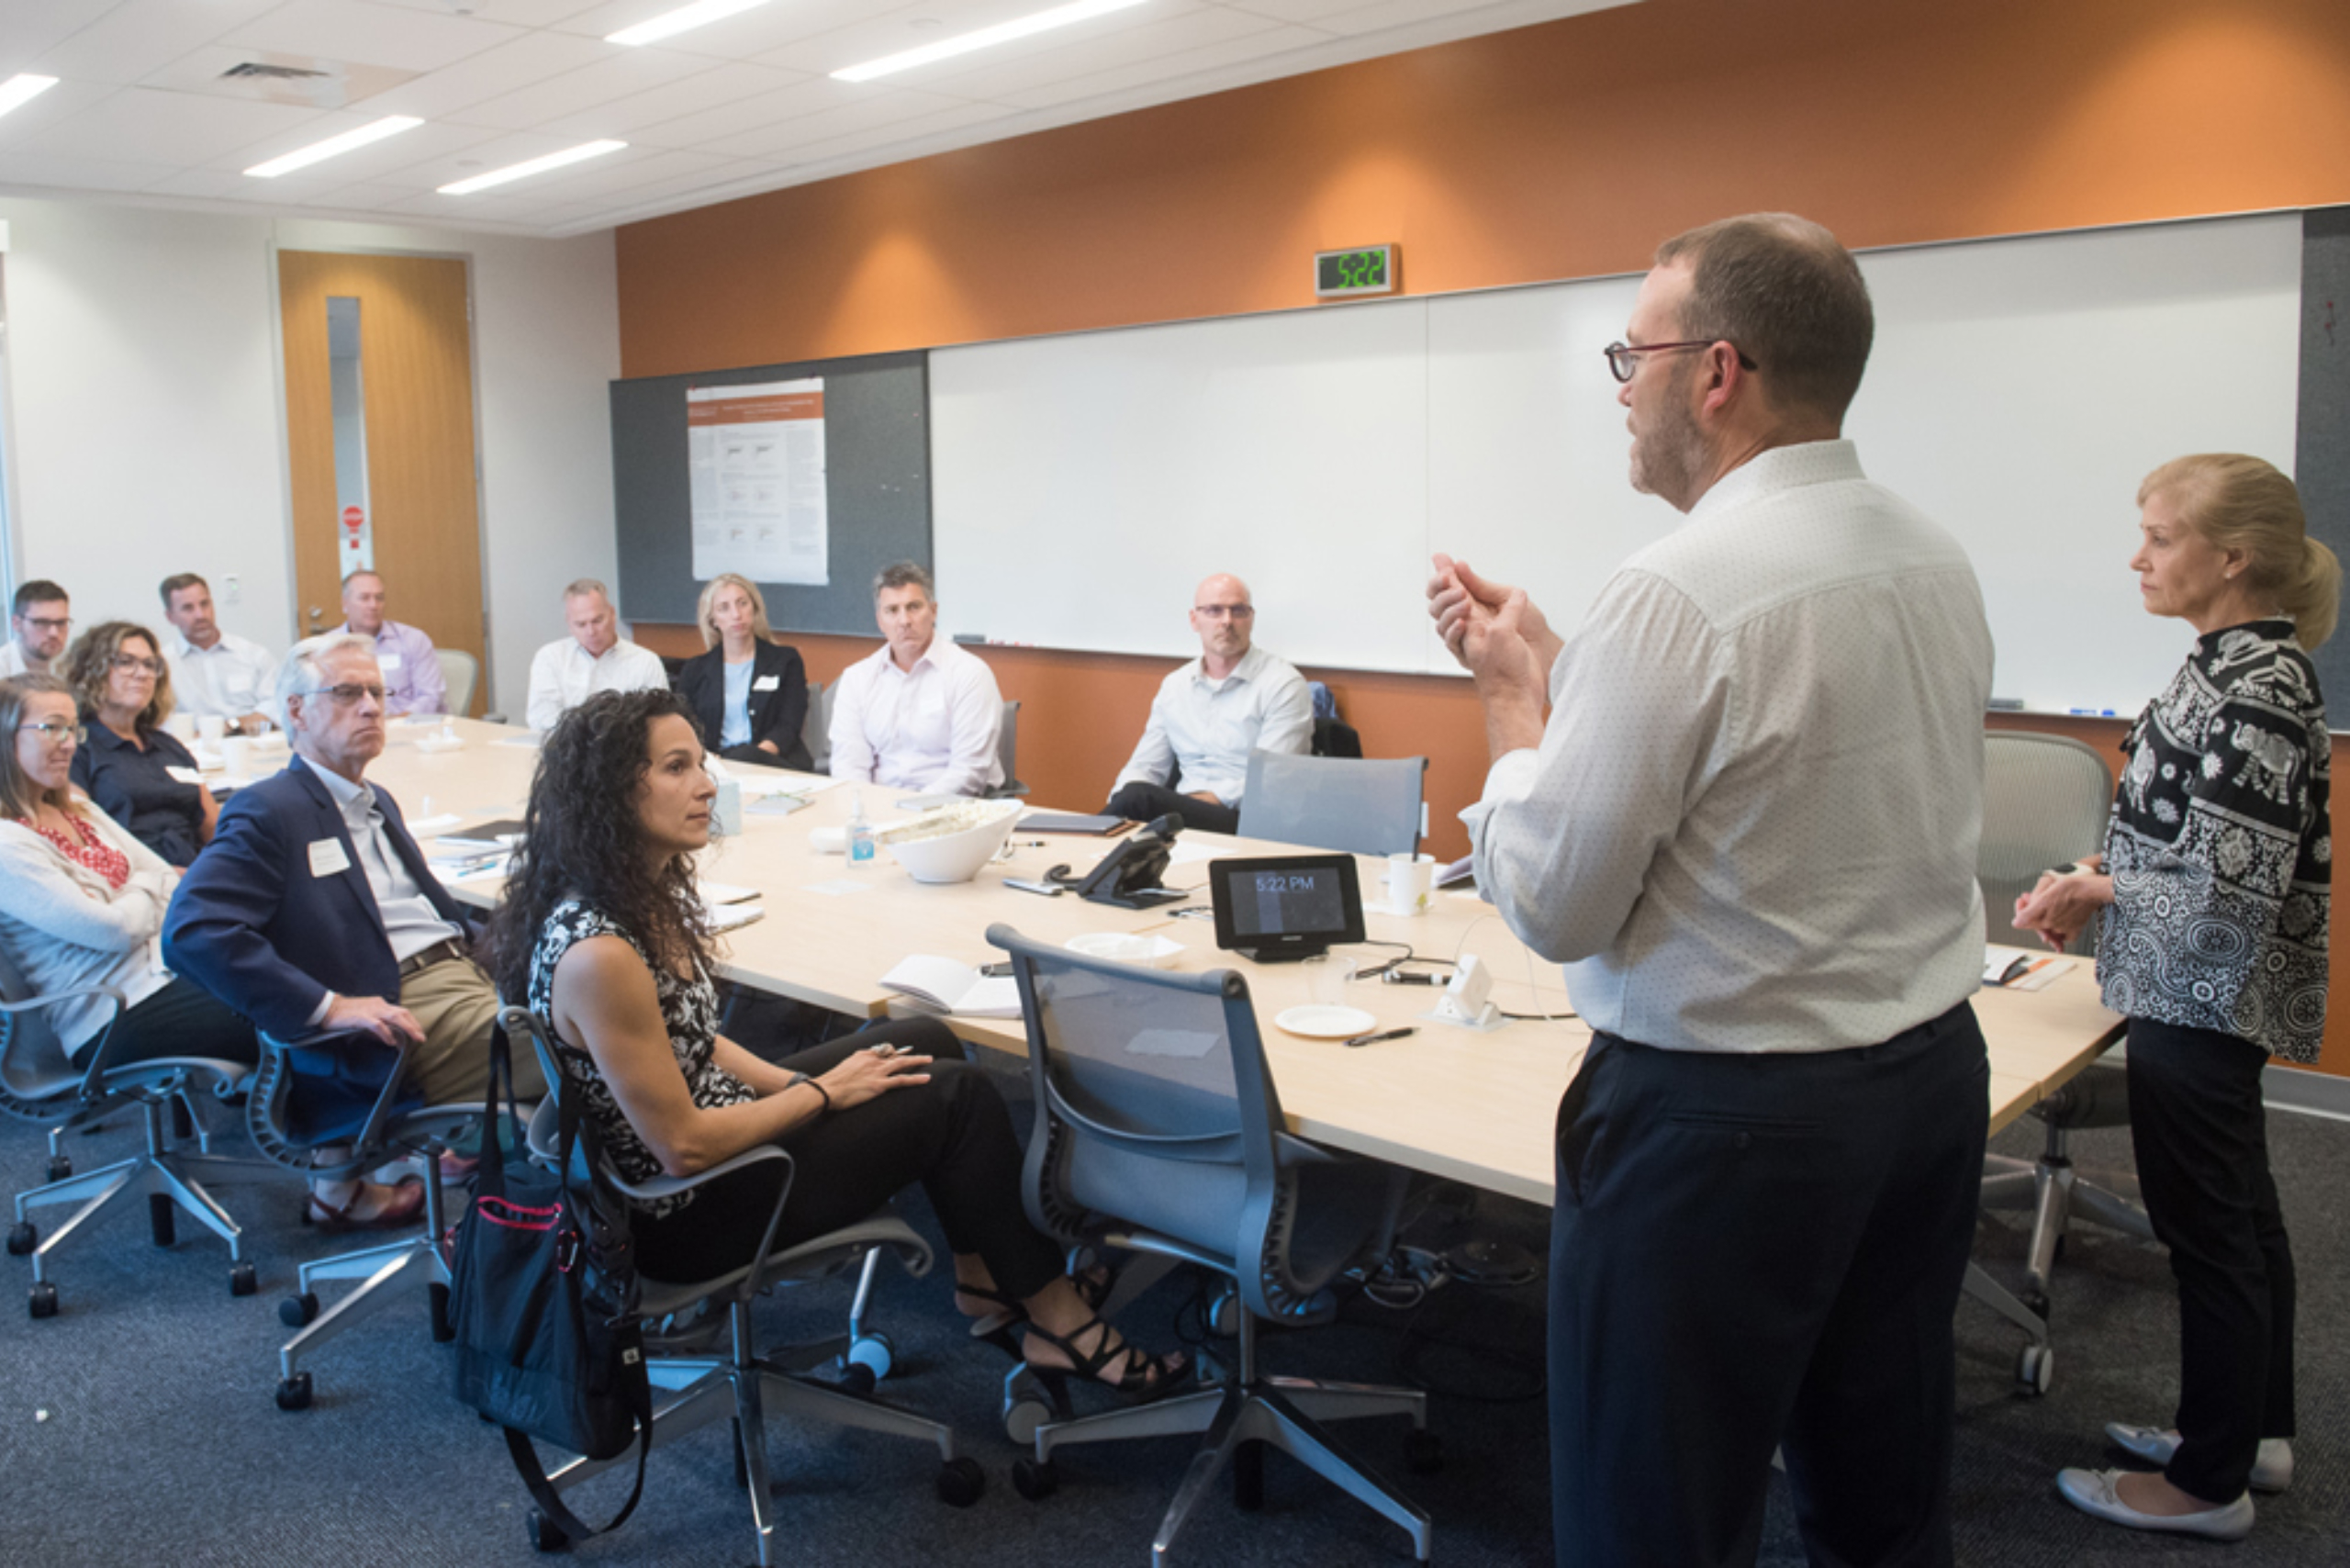 Elizabeth Teisberg and Scott Wallace present to a group during the Musculoskeletal Institute's Immersion Program in Value-Based Health Care.